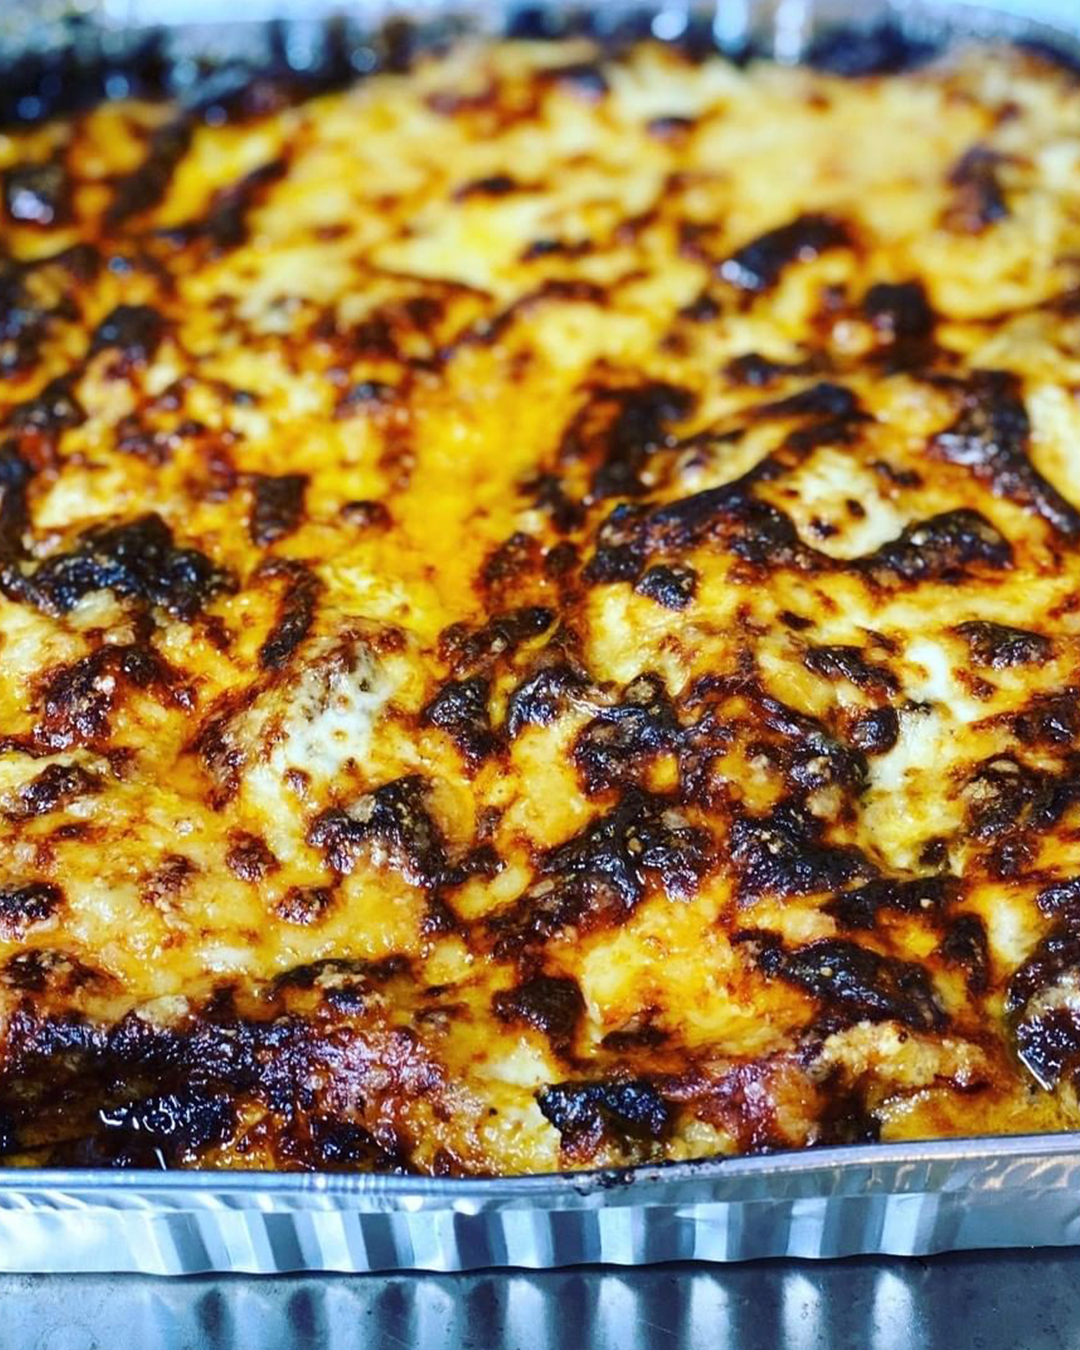 Close up of a large metal sheet pan of lasagne with a bubbling crisp cheese surface.